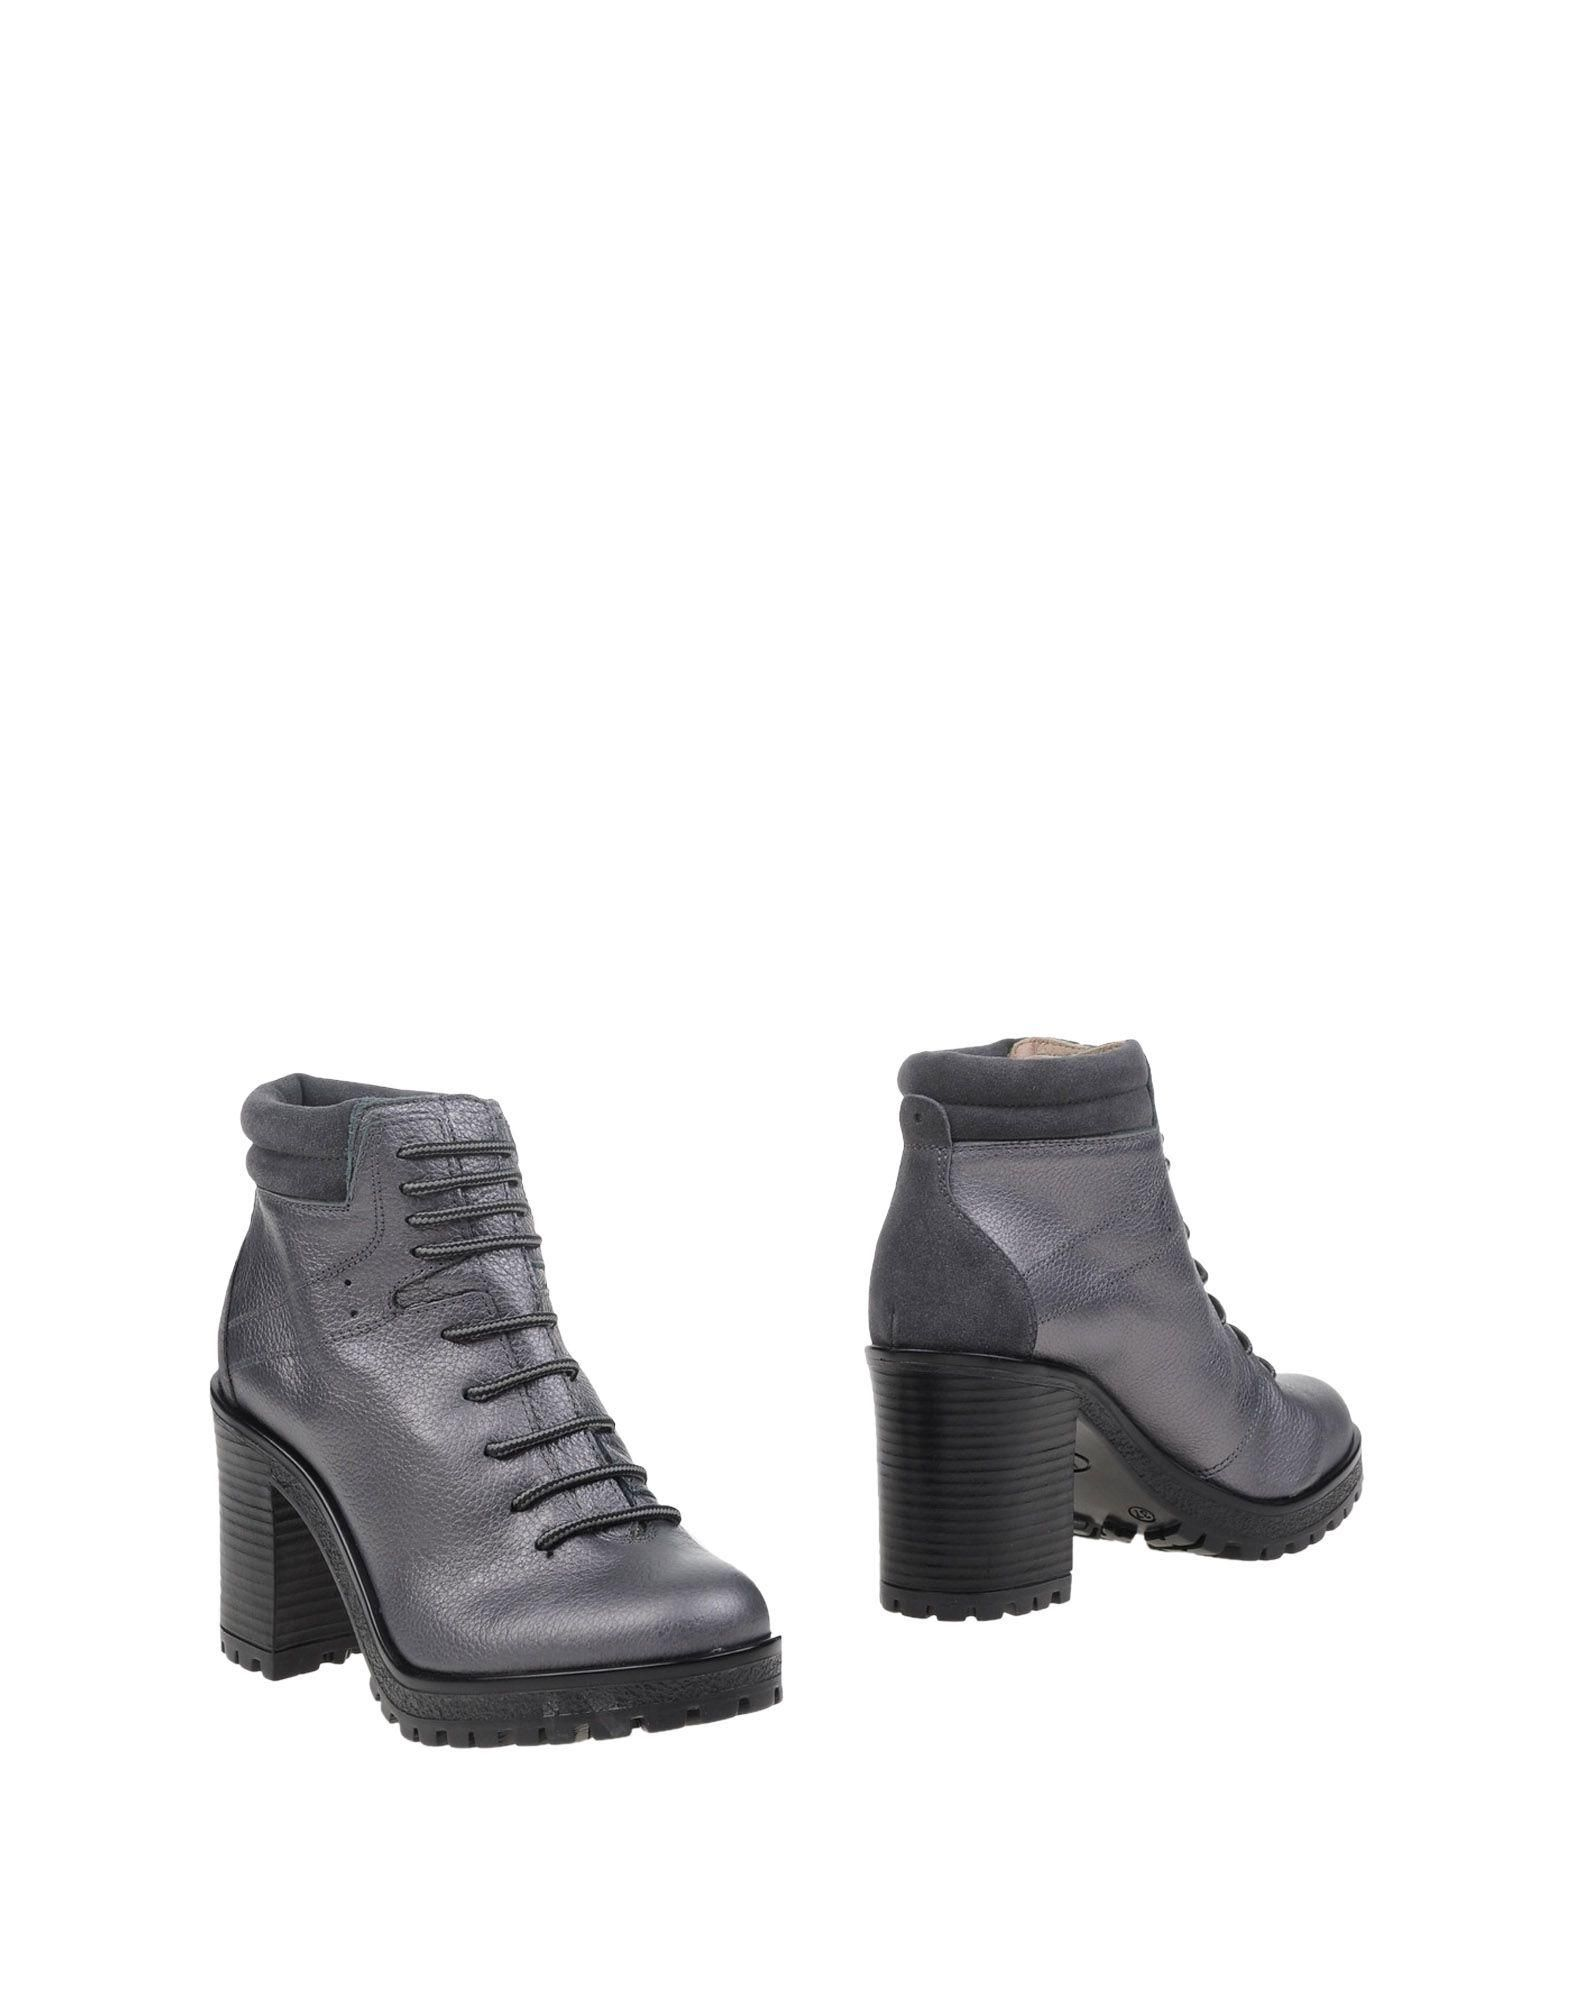 volumen grande gran descuento buena textura Women's Gray Ankle Boots in 2019 | Boots, Grey ankle boots ...